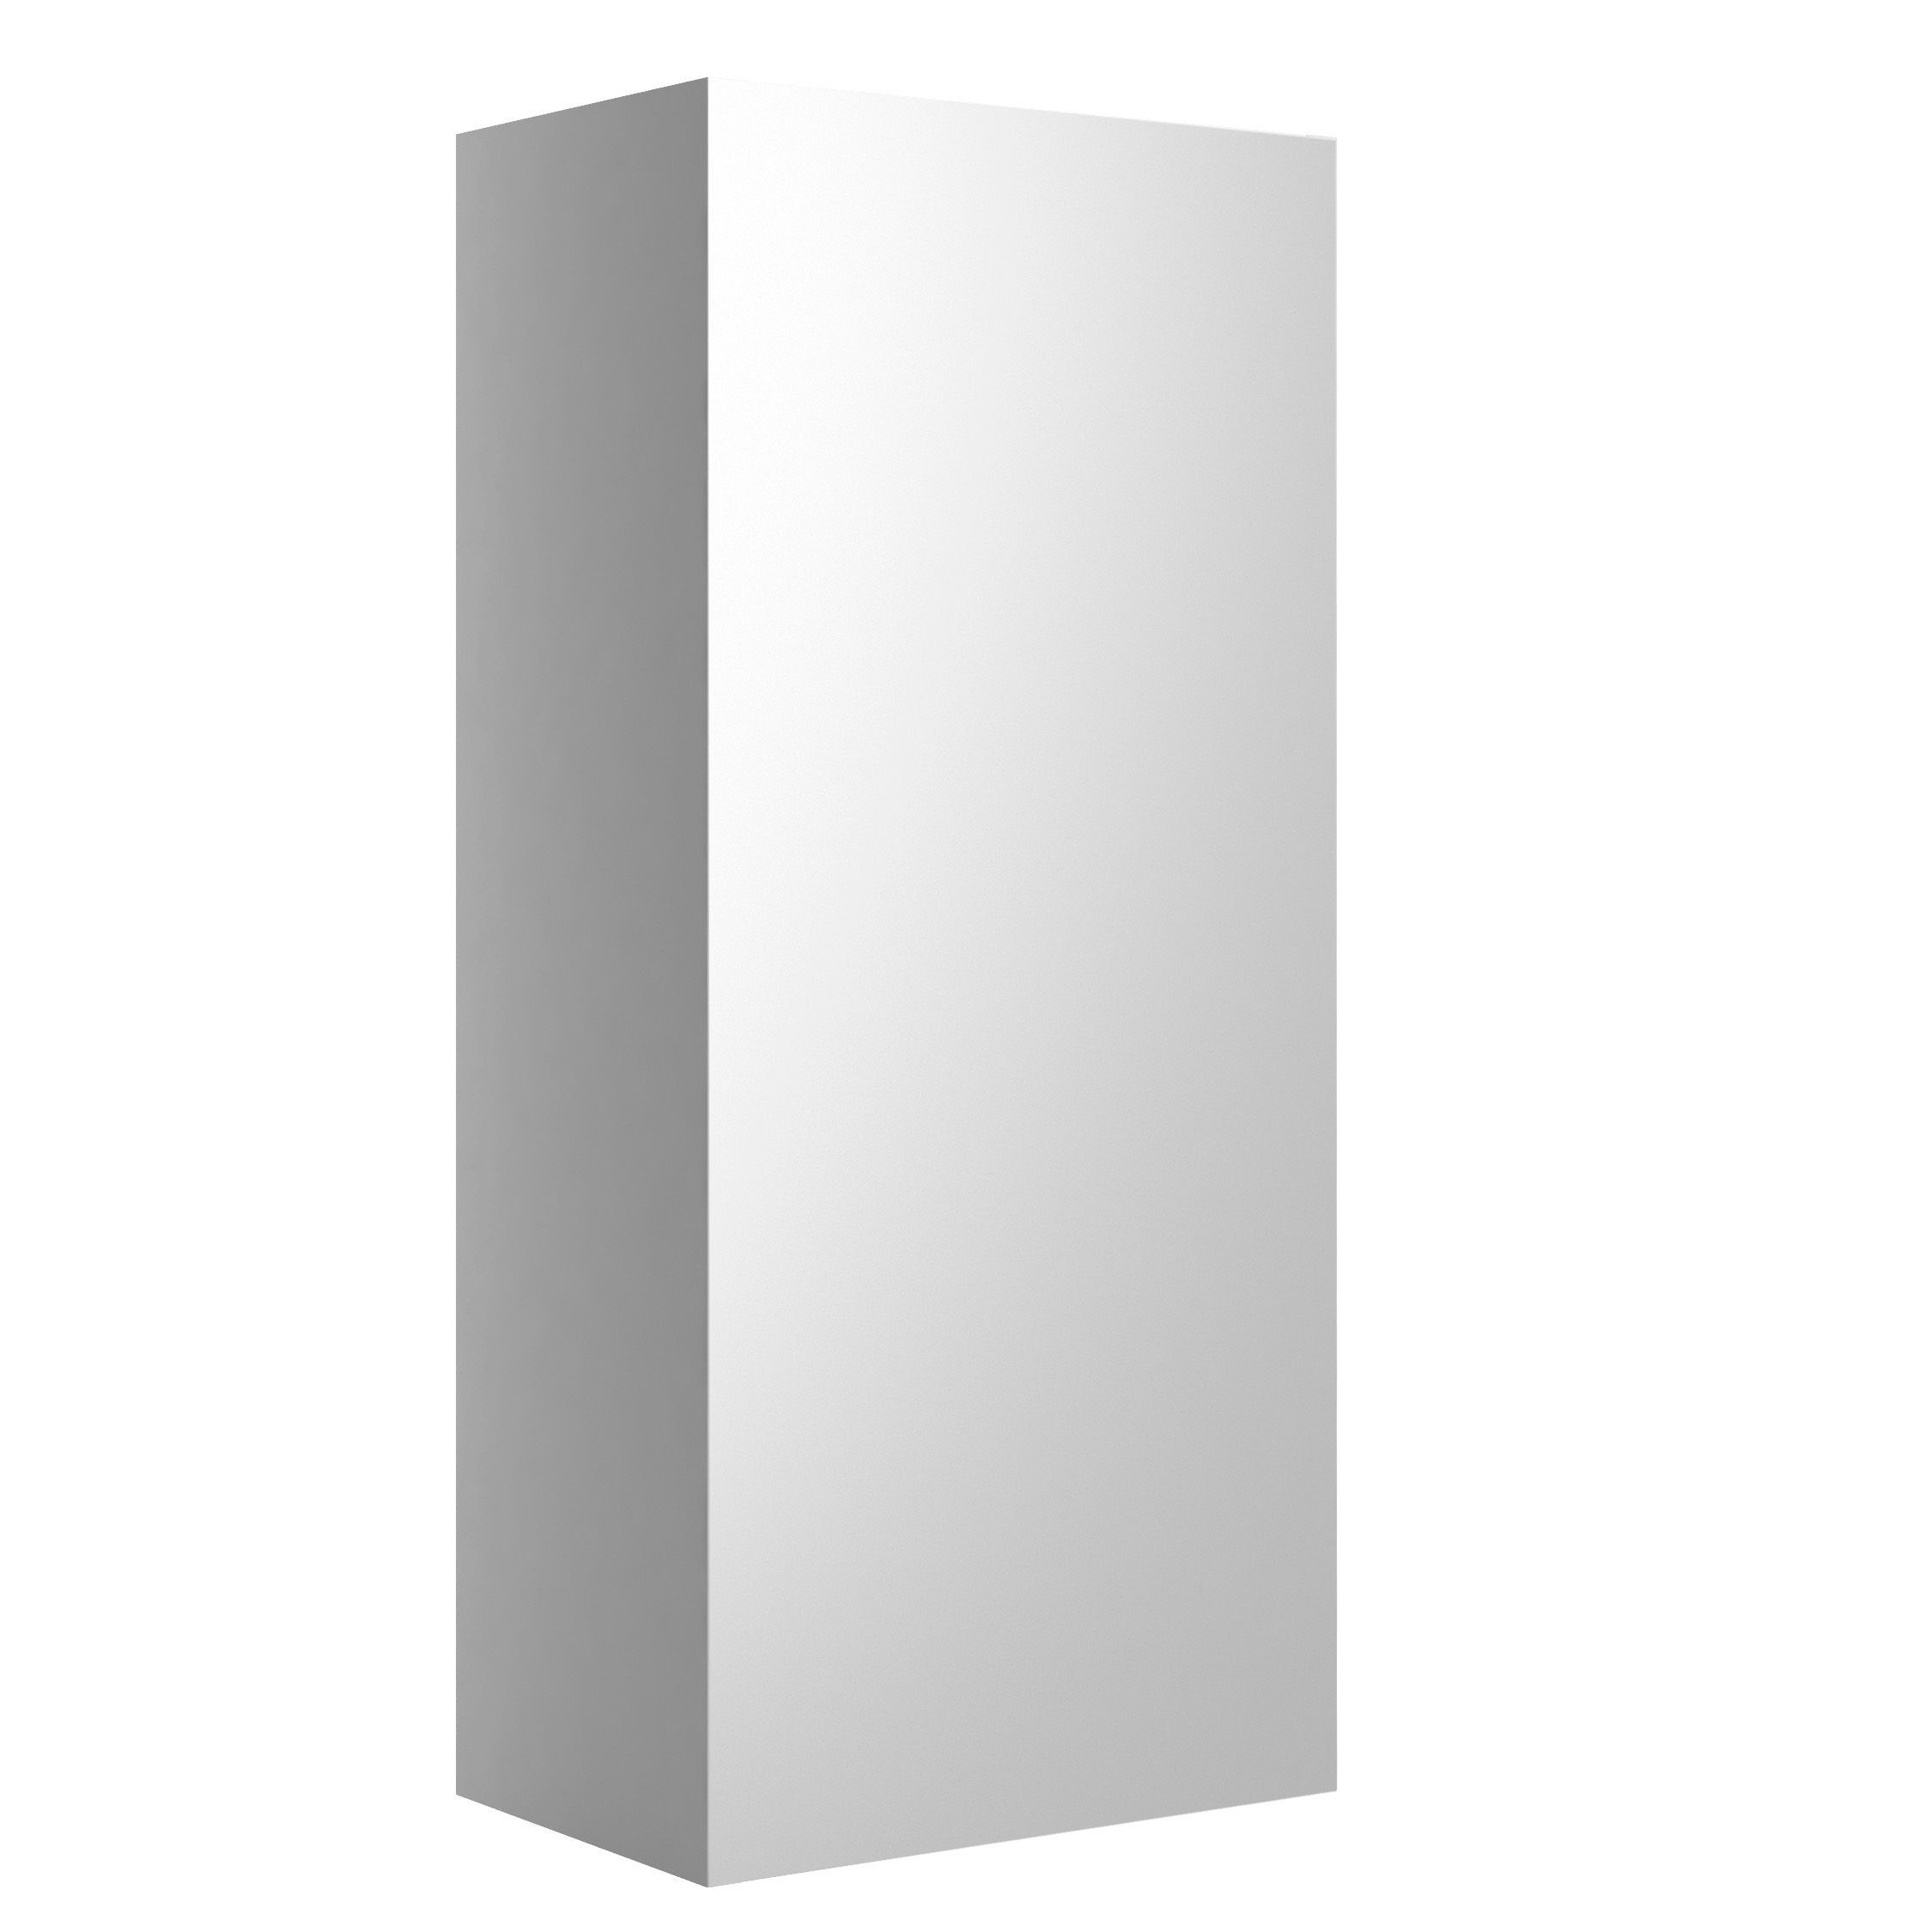 Cooke Lewis Santini Gloss White Single Door Wall Cabinet W 300mm